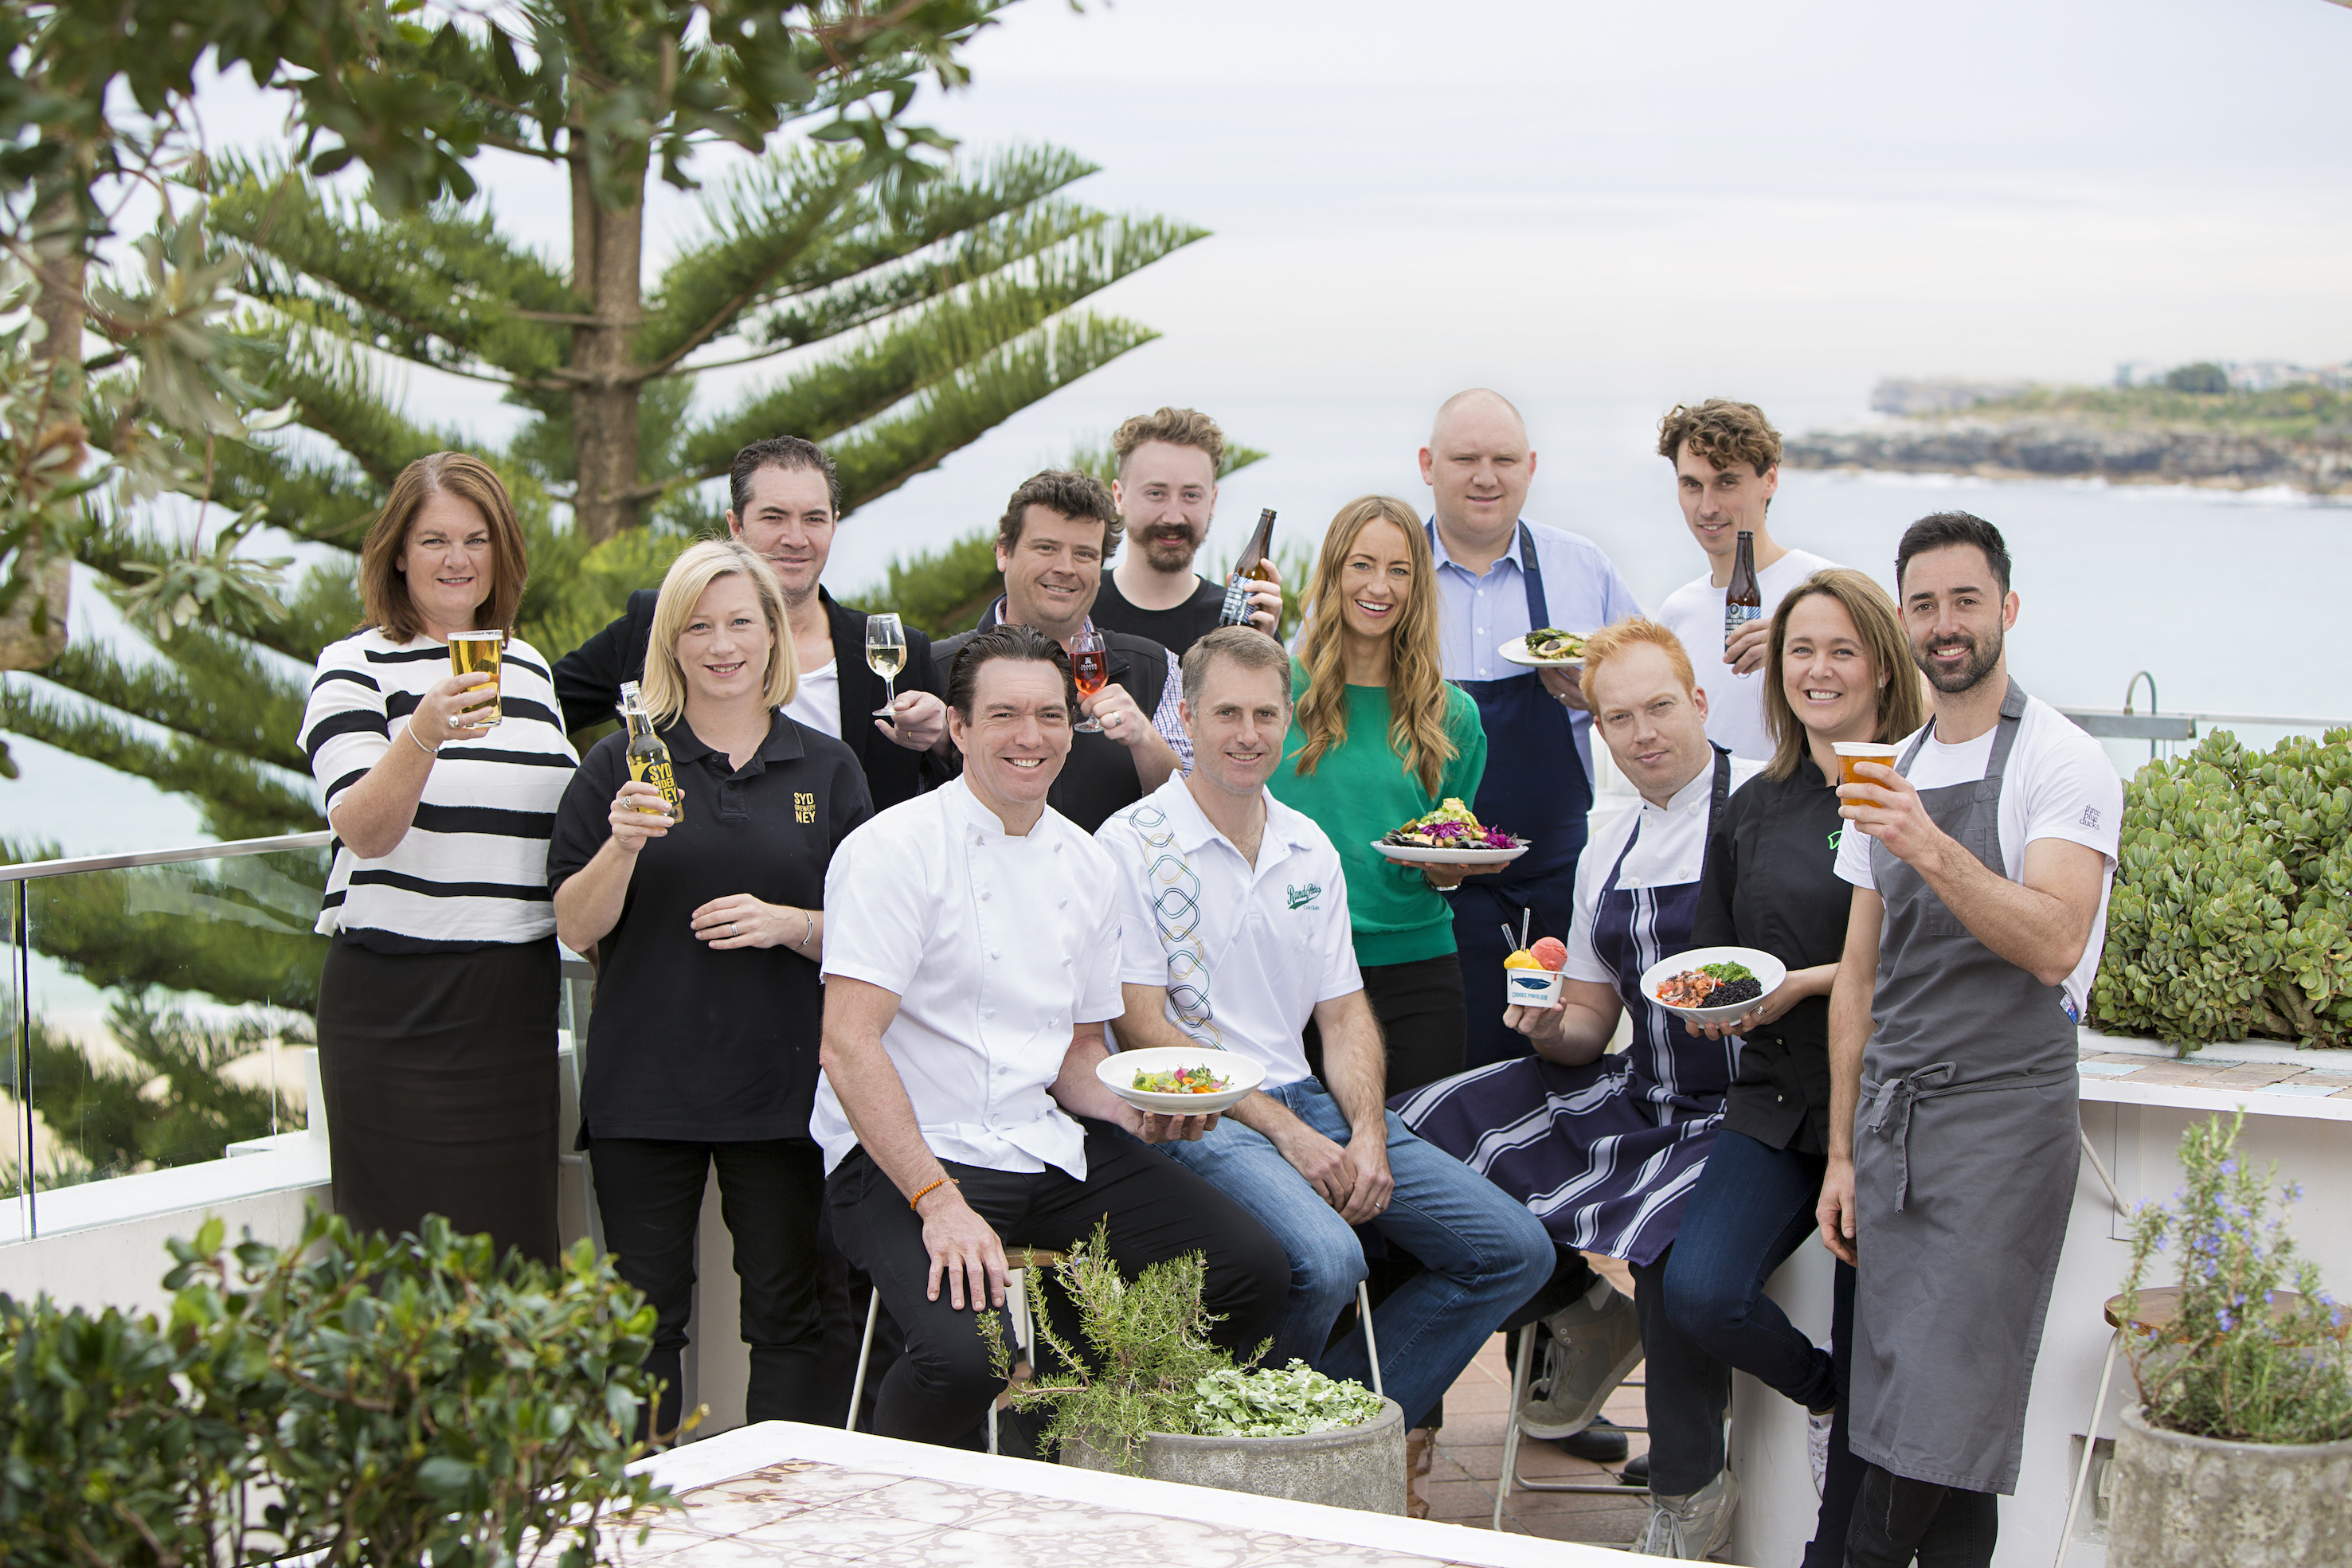 Win an exclusive experience at Taste of Coogee